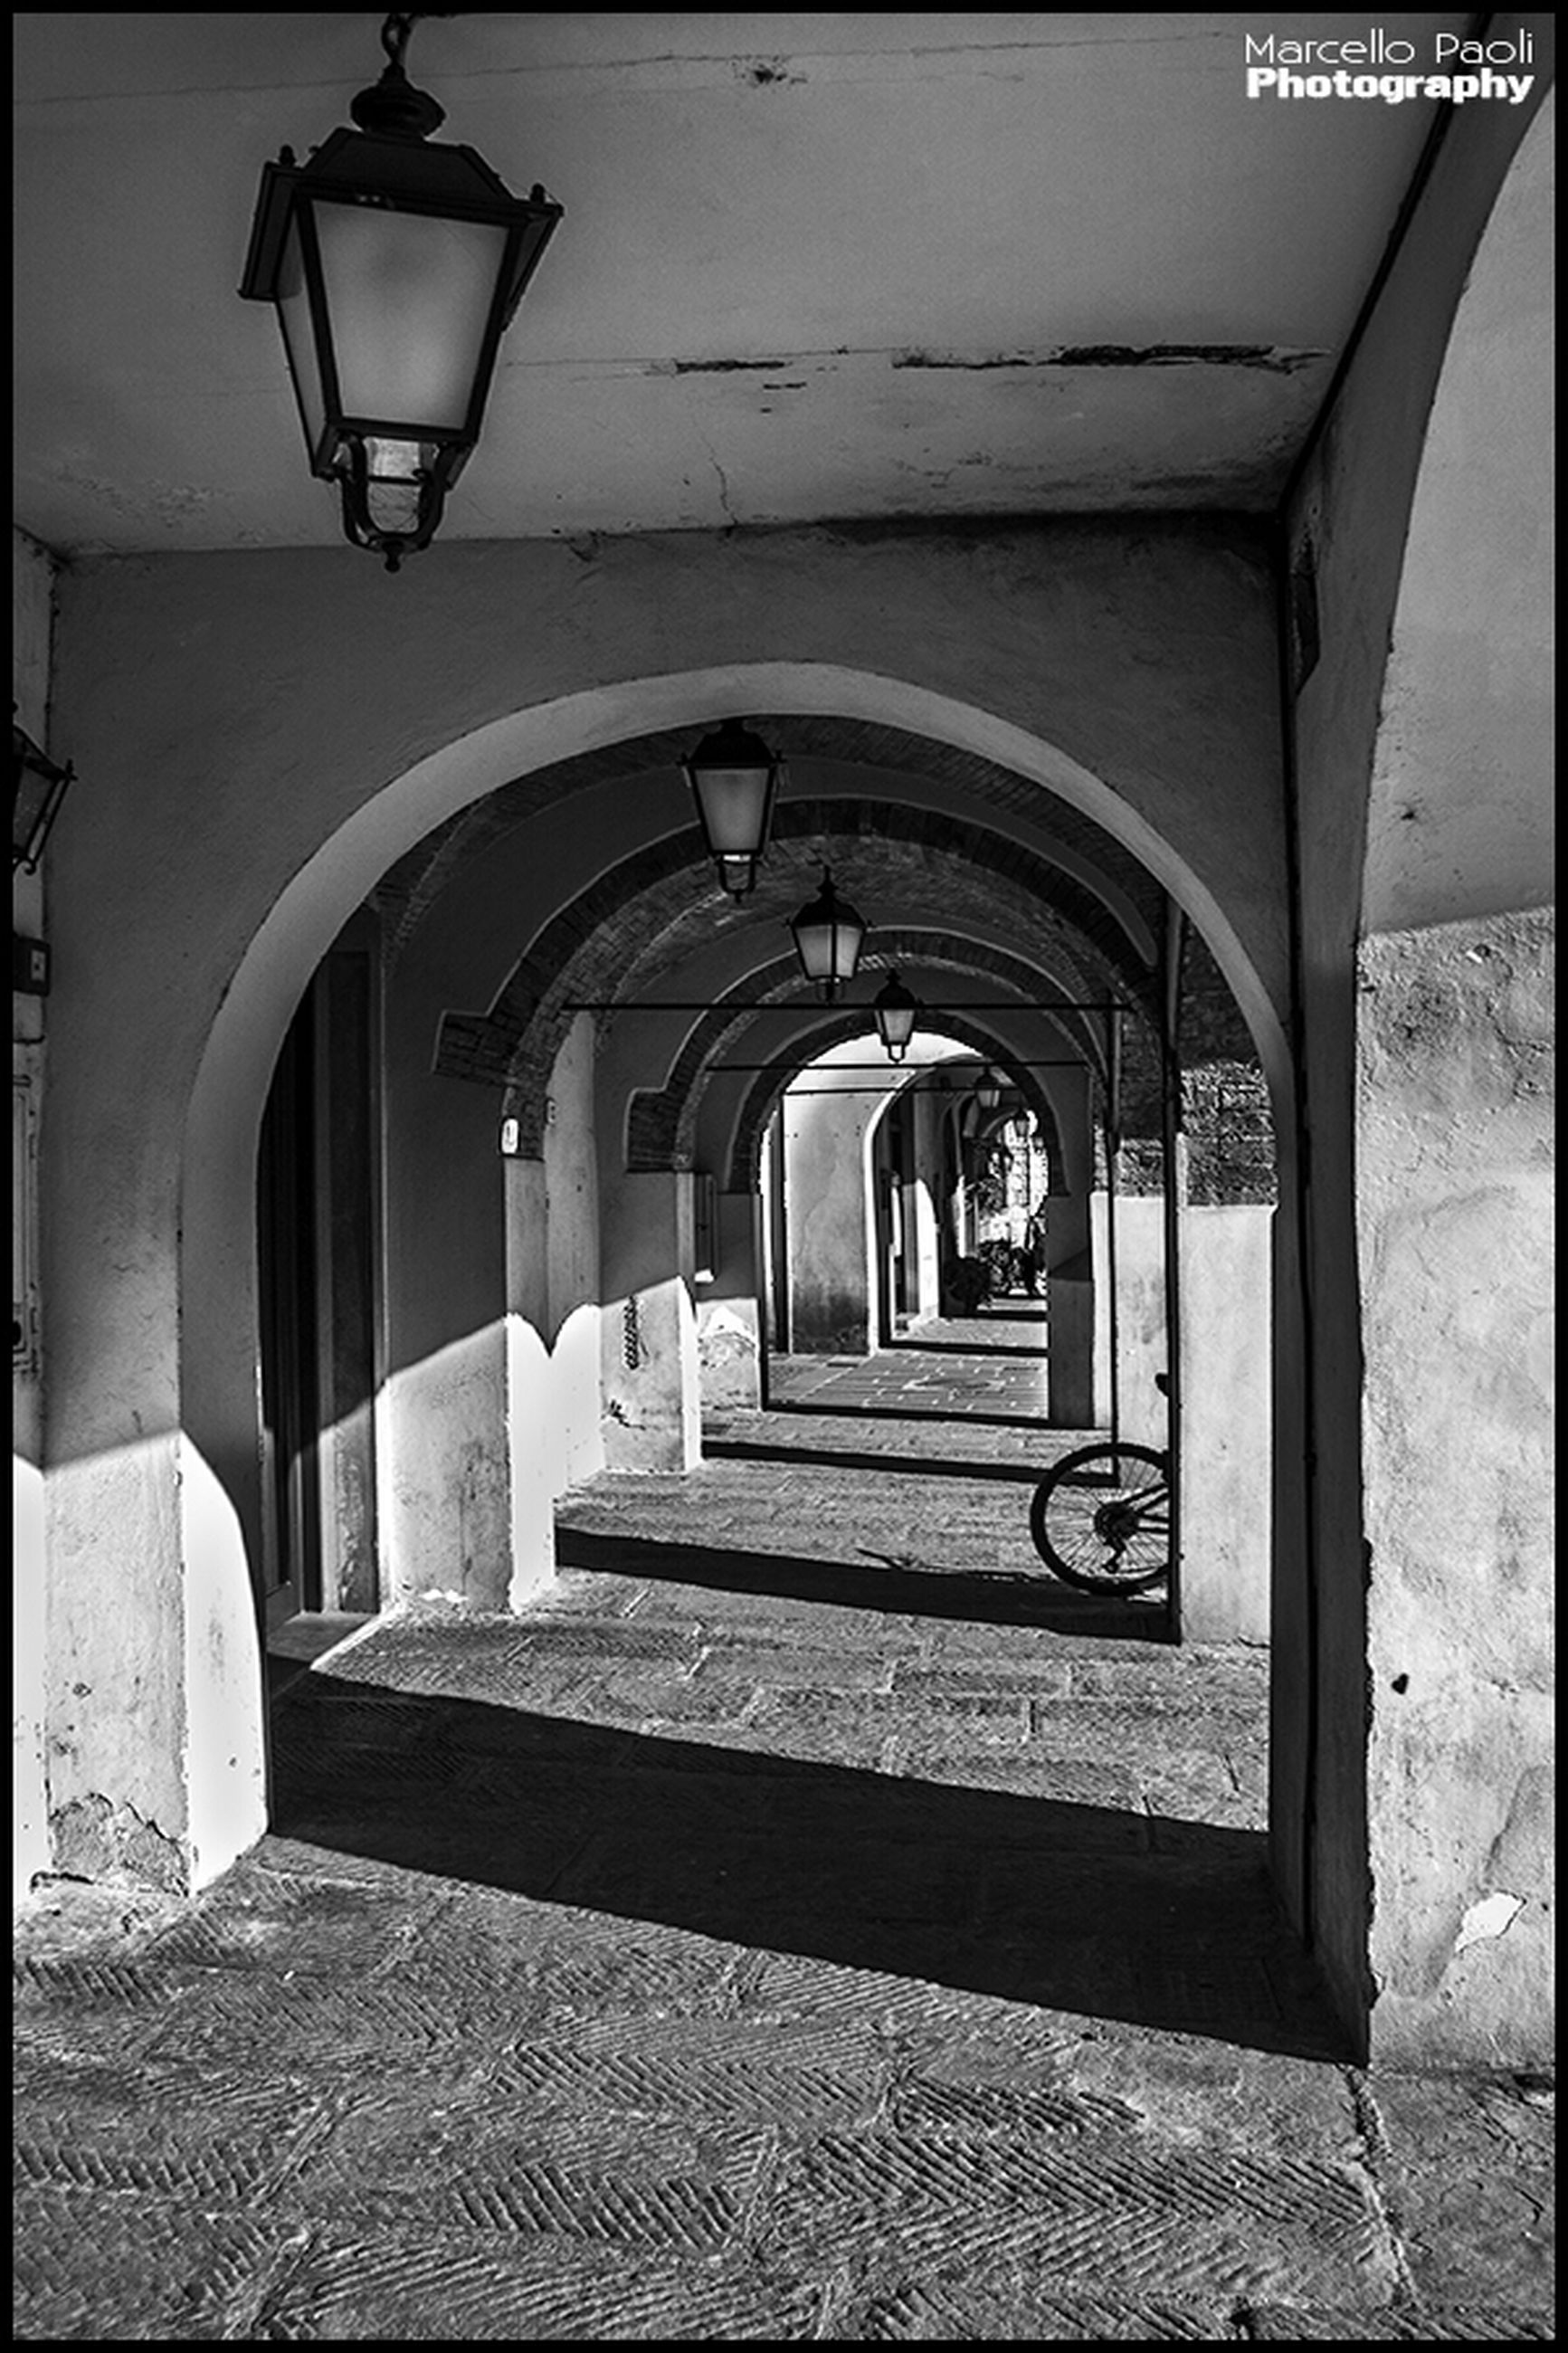 architecture, built structure, the way forward, indoors, arch, lighting equipment, corridor, empty, building exterior, ceiling, architectural column, building, diminishing perspective, absence, sunlight, steps, walkway, column, street light, railing